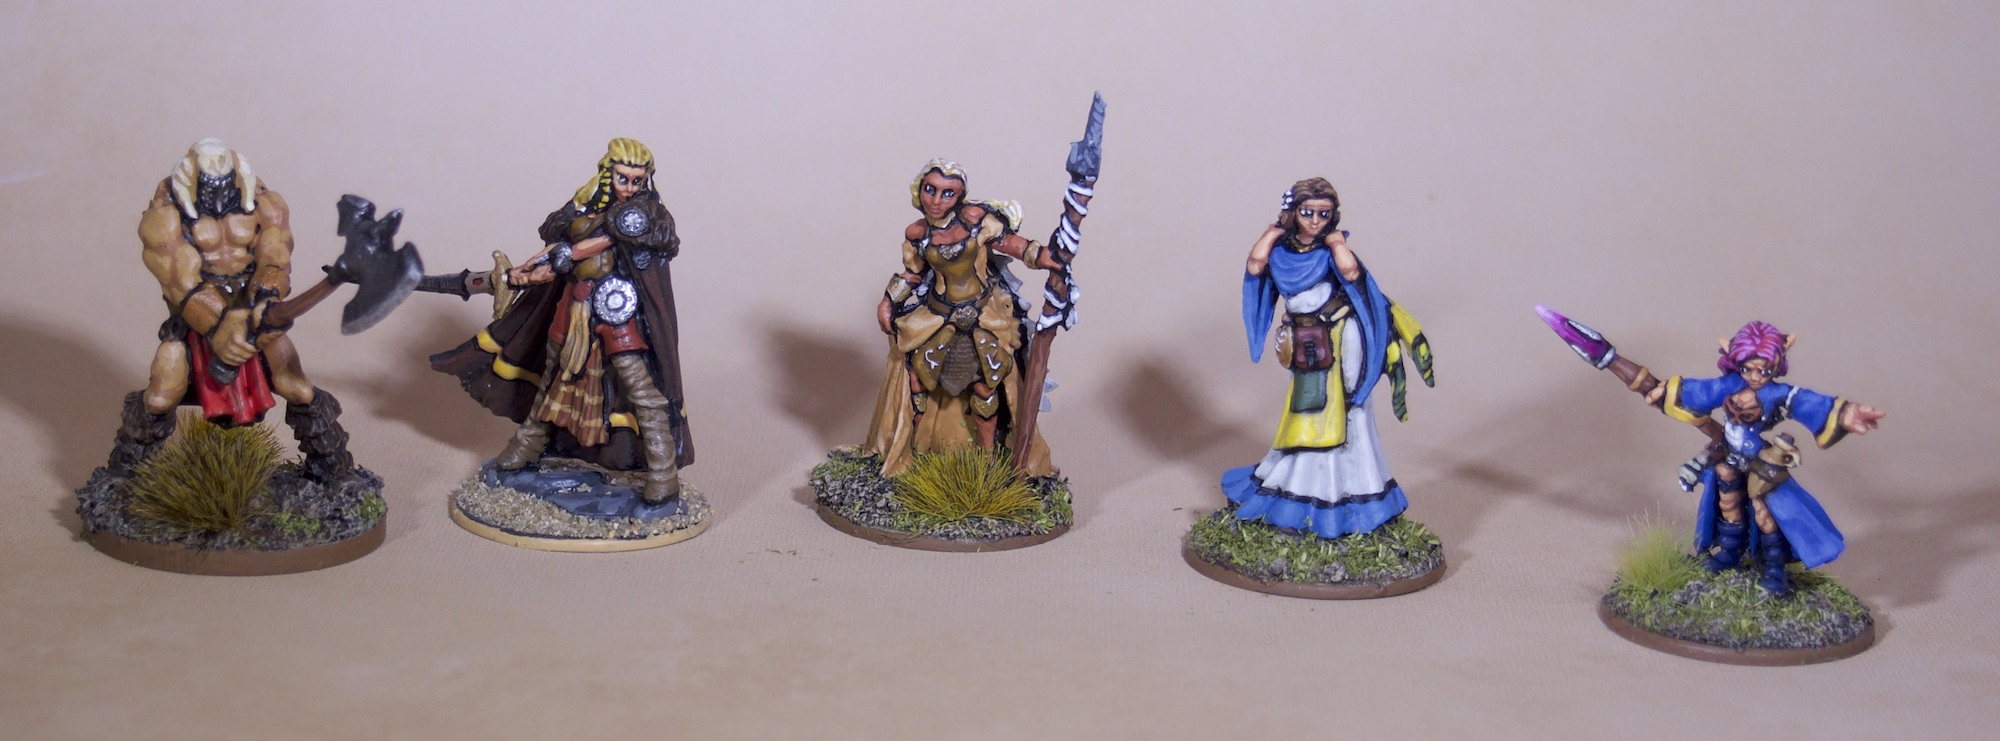 Painted Roleplaying Miniatures - Adventuring Party